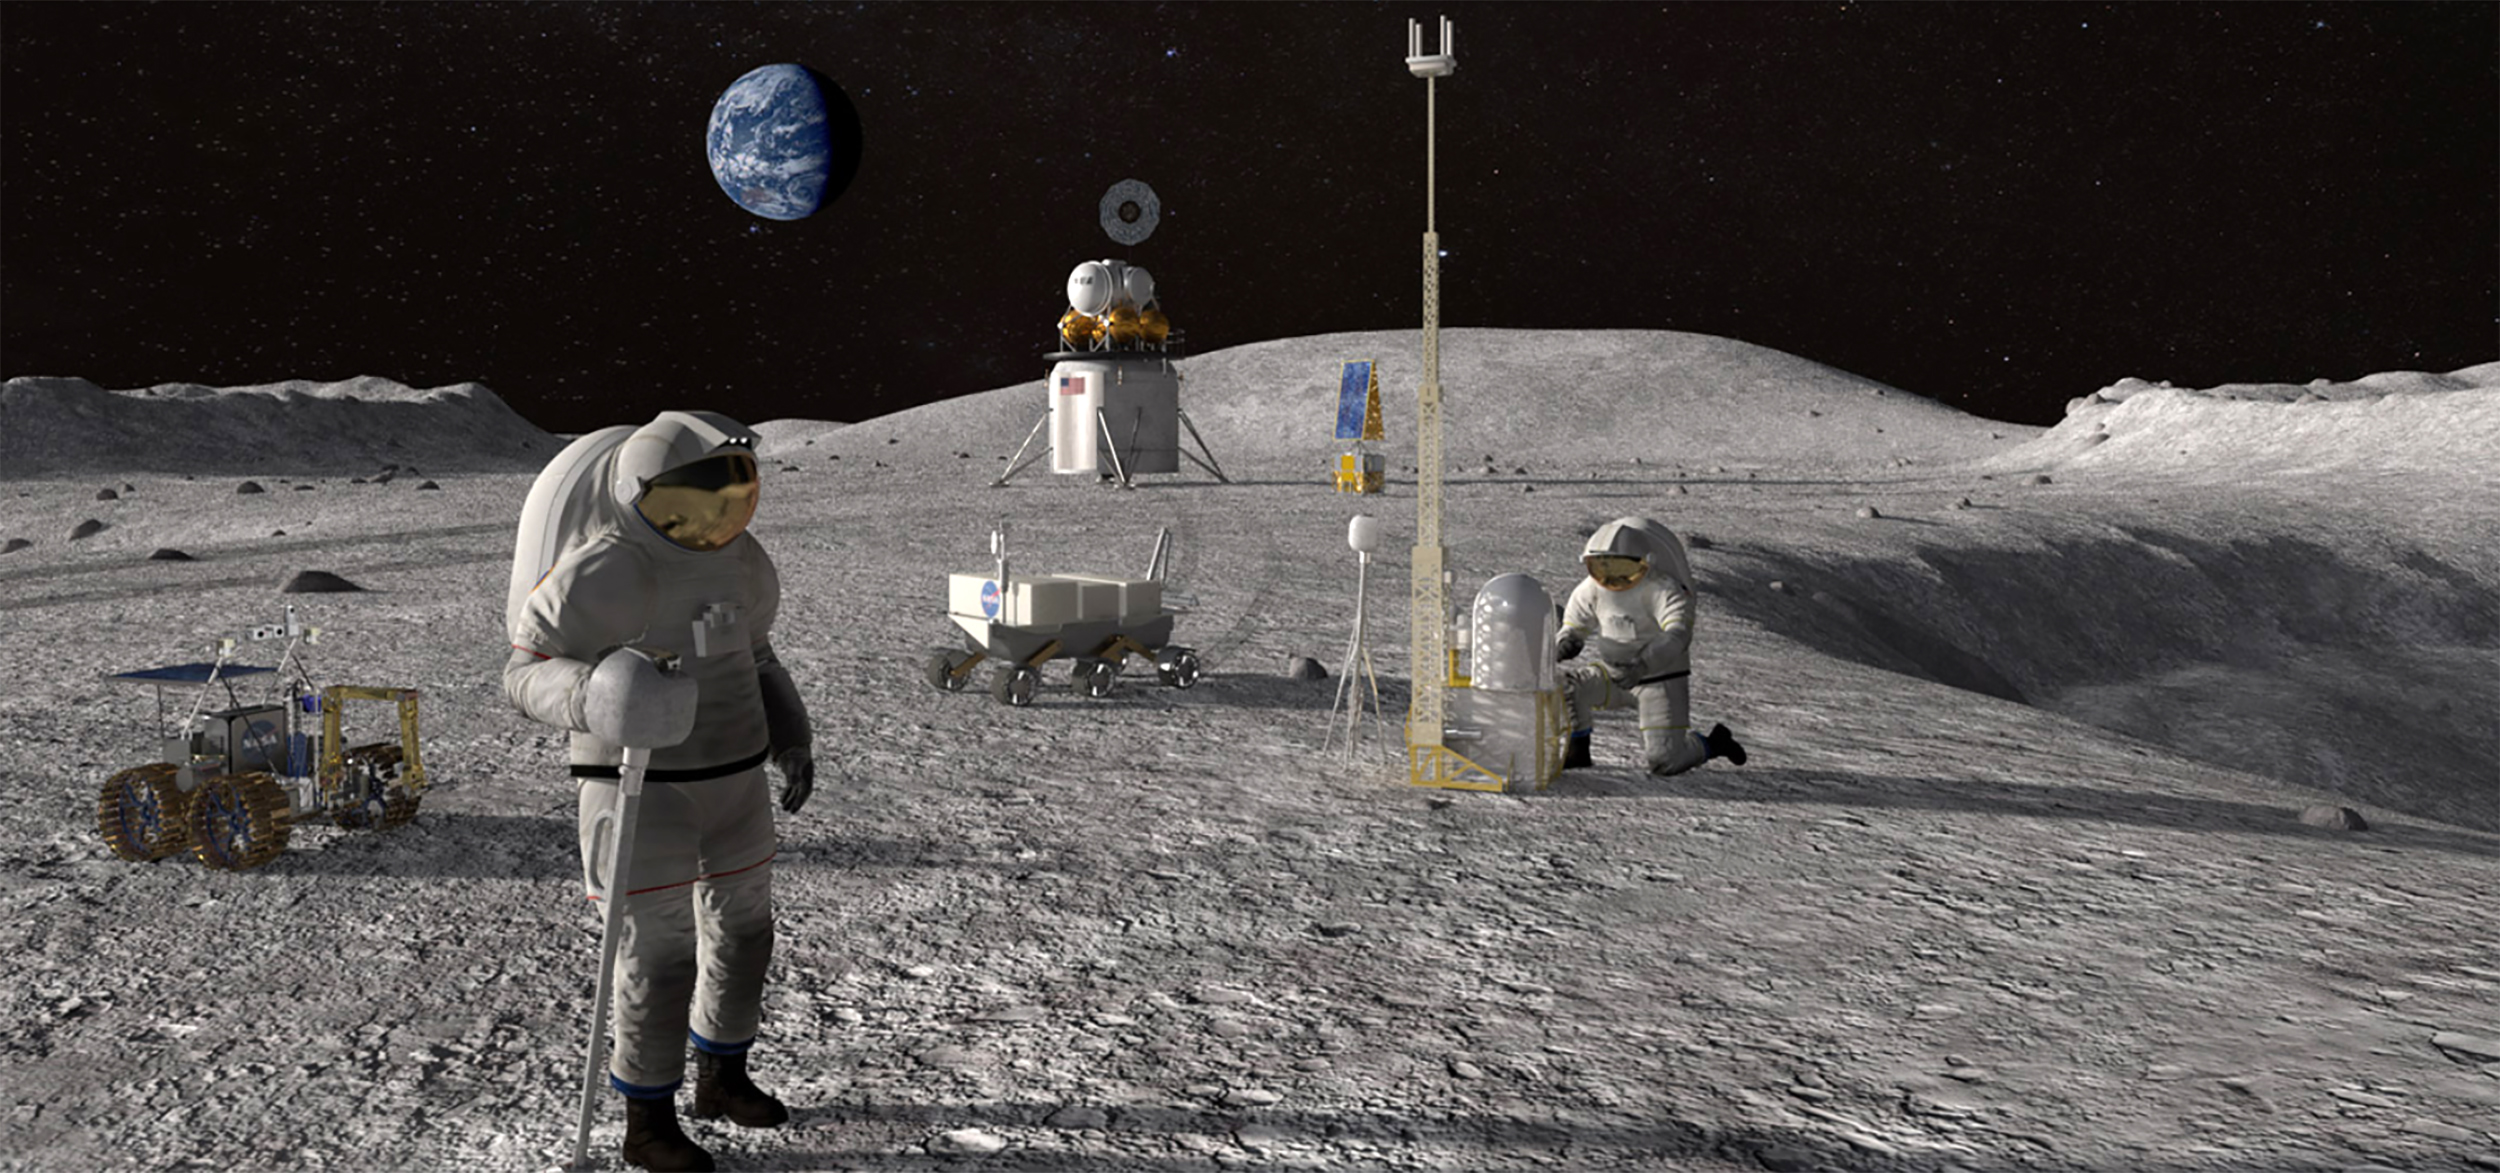 Image: Illustration of astronauts and robots on the moon.